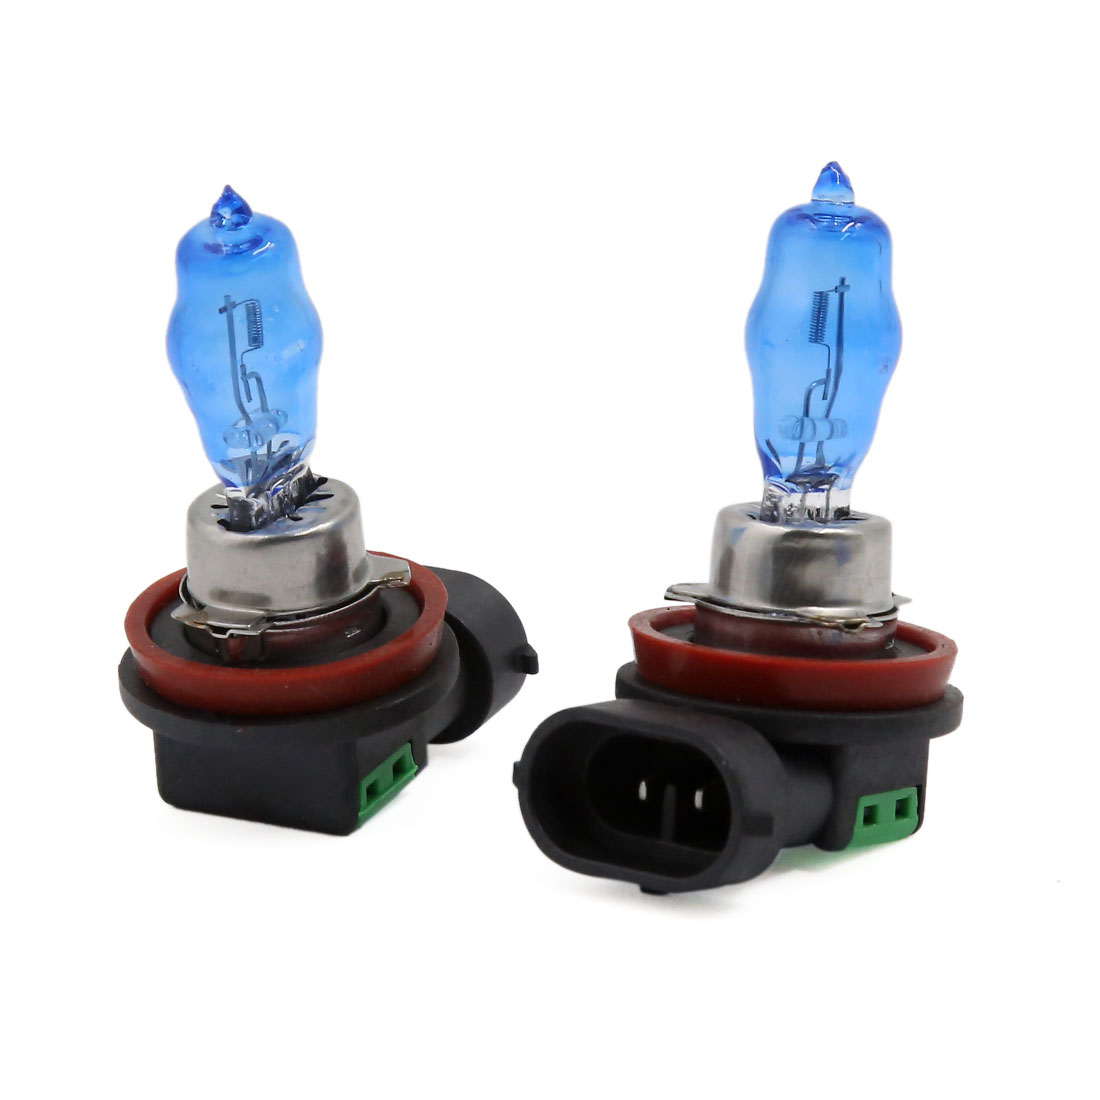 2pcs H11 12V 100W Super White Auto Car HOD Halogen Bulb Headlight Fog Lamps